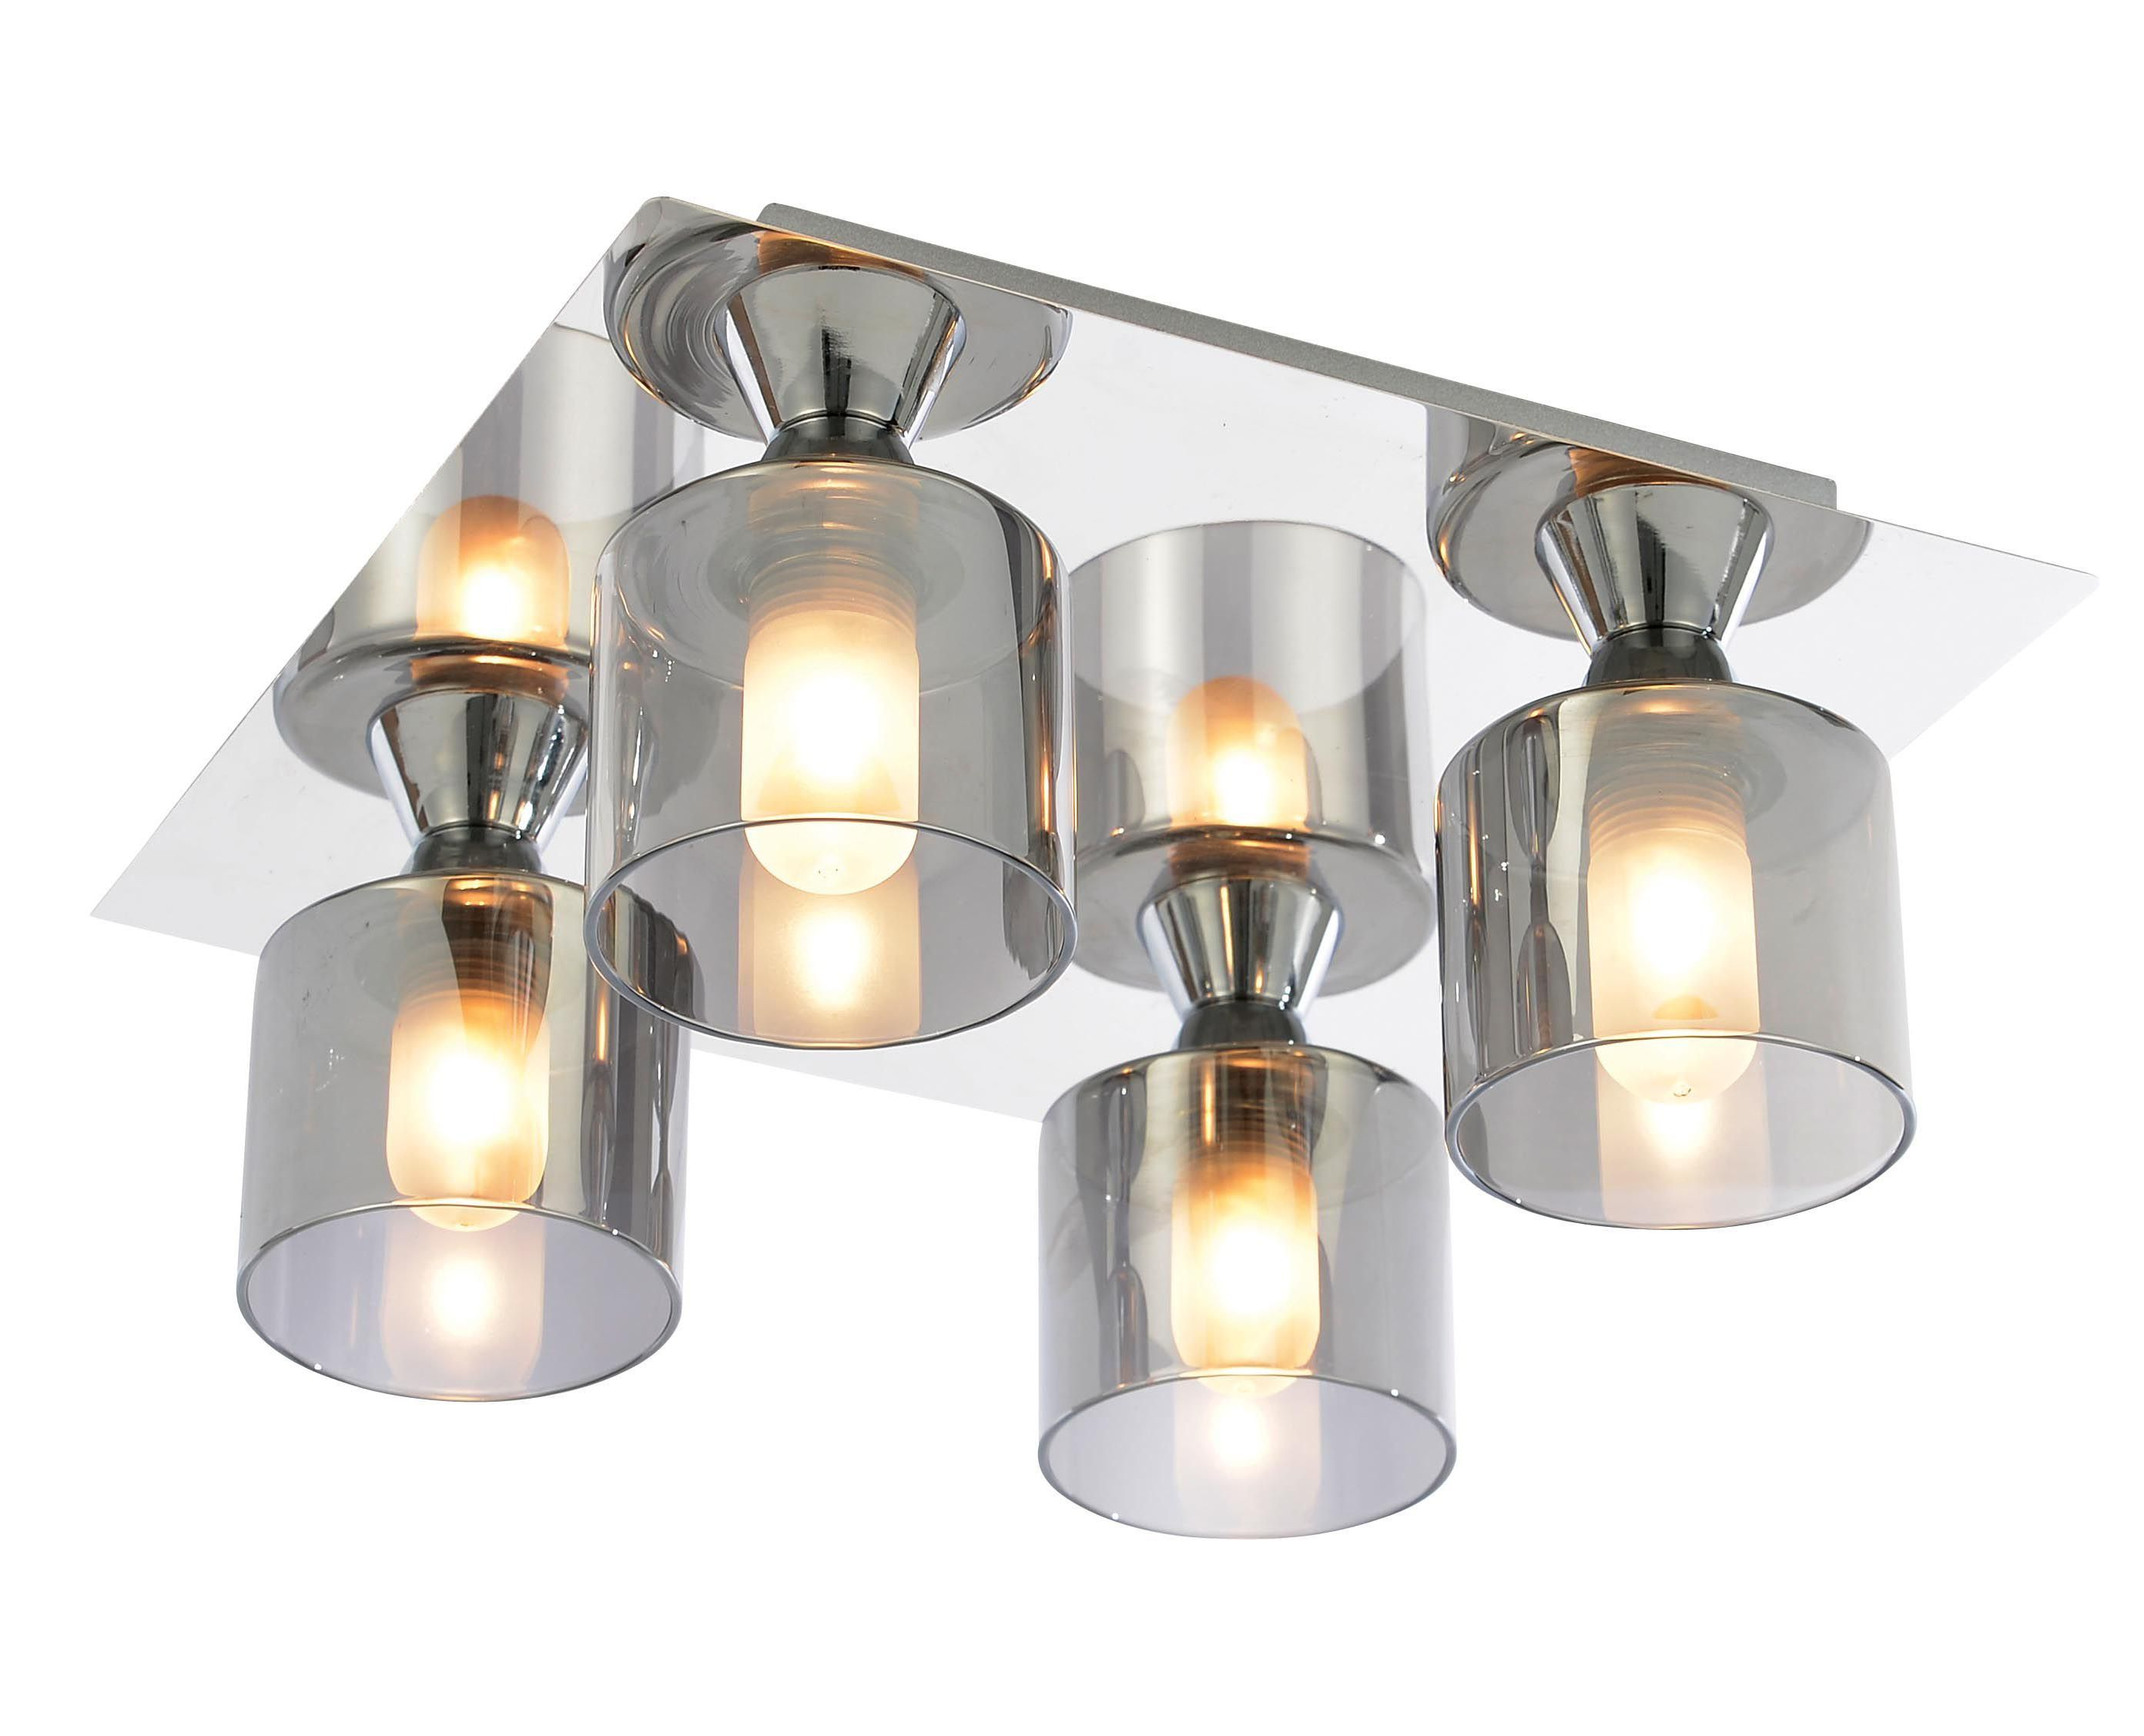 new arrival 818c8 8aedf Cobark Clear Smoked Effect 4 Lamp Bathroom Ceiling Light ...